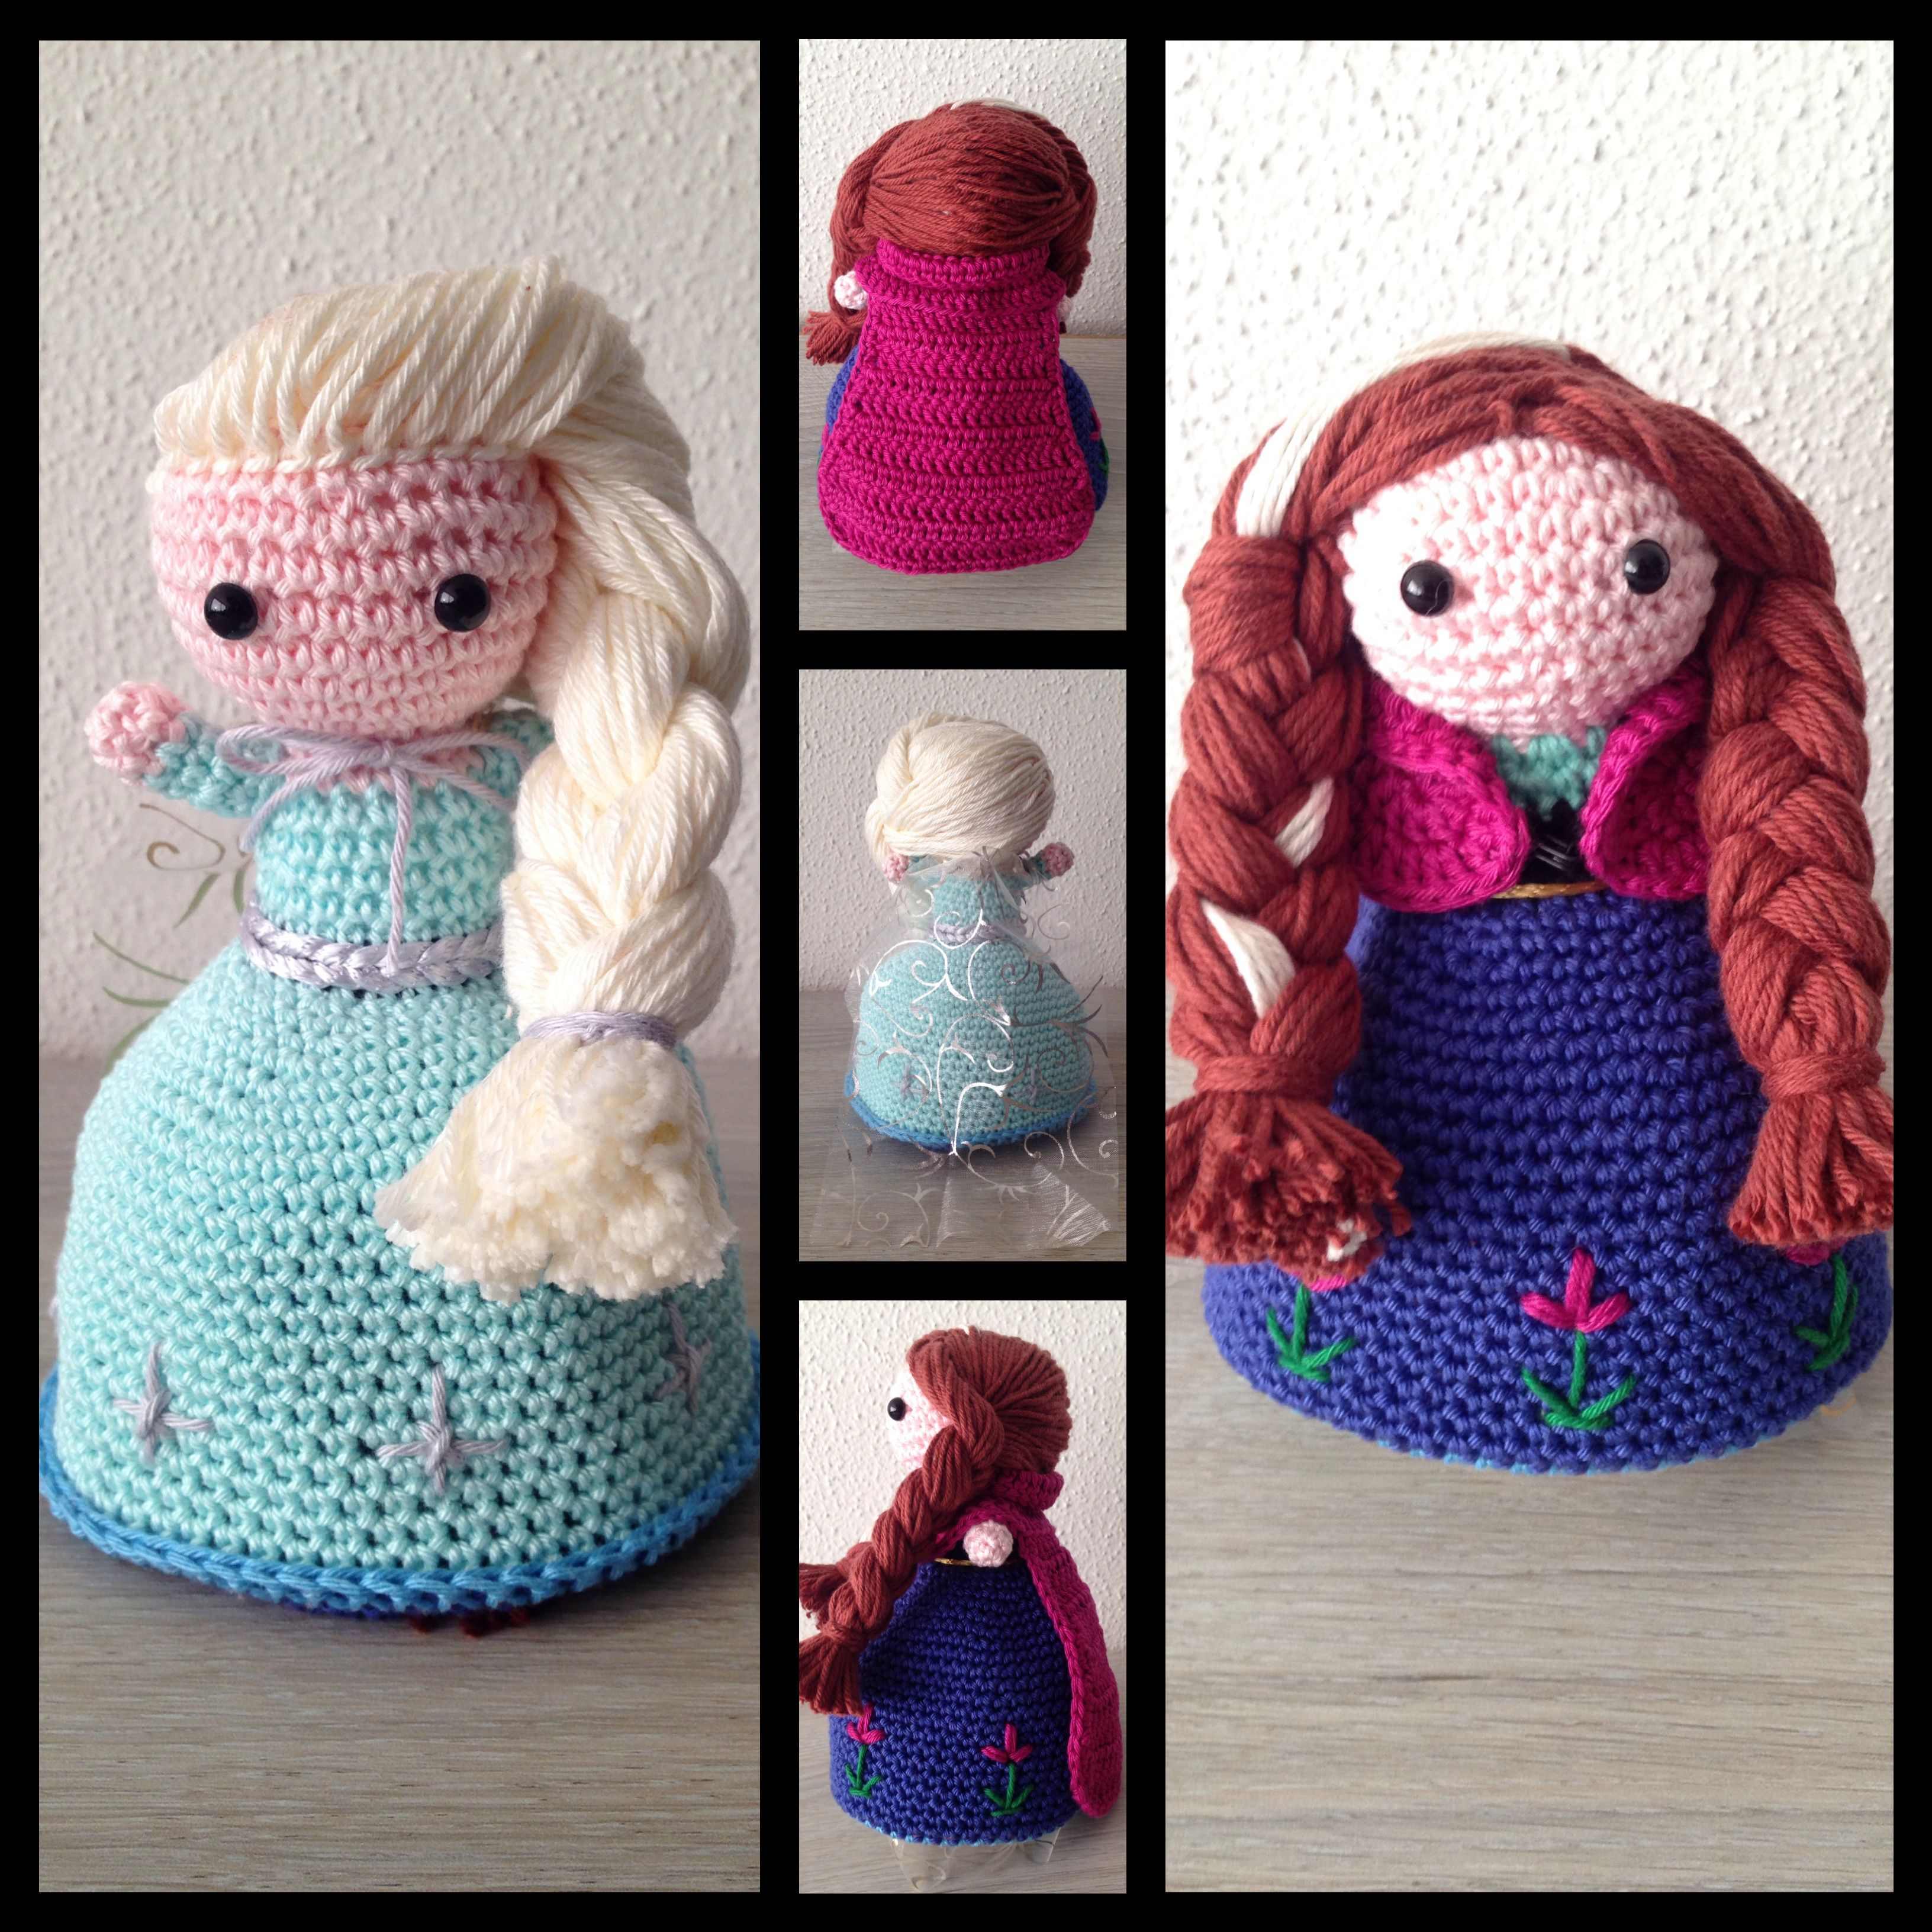 Topsy turvy Frozen doll! Anna and Elsa in 1!